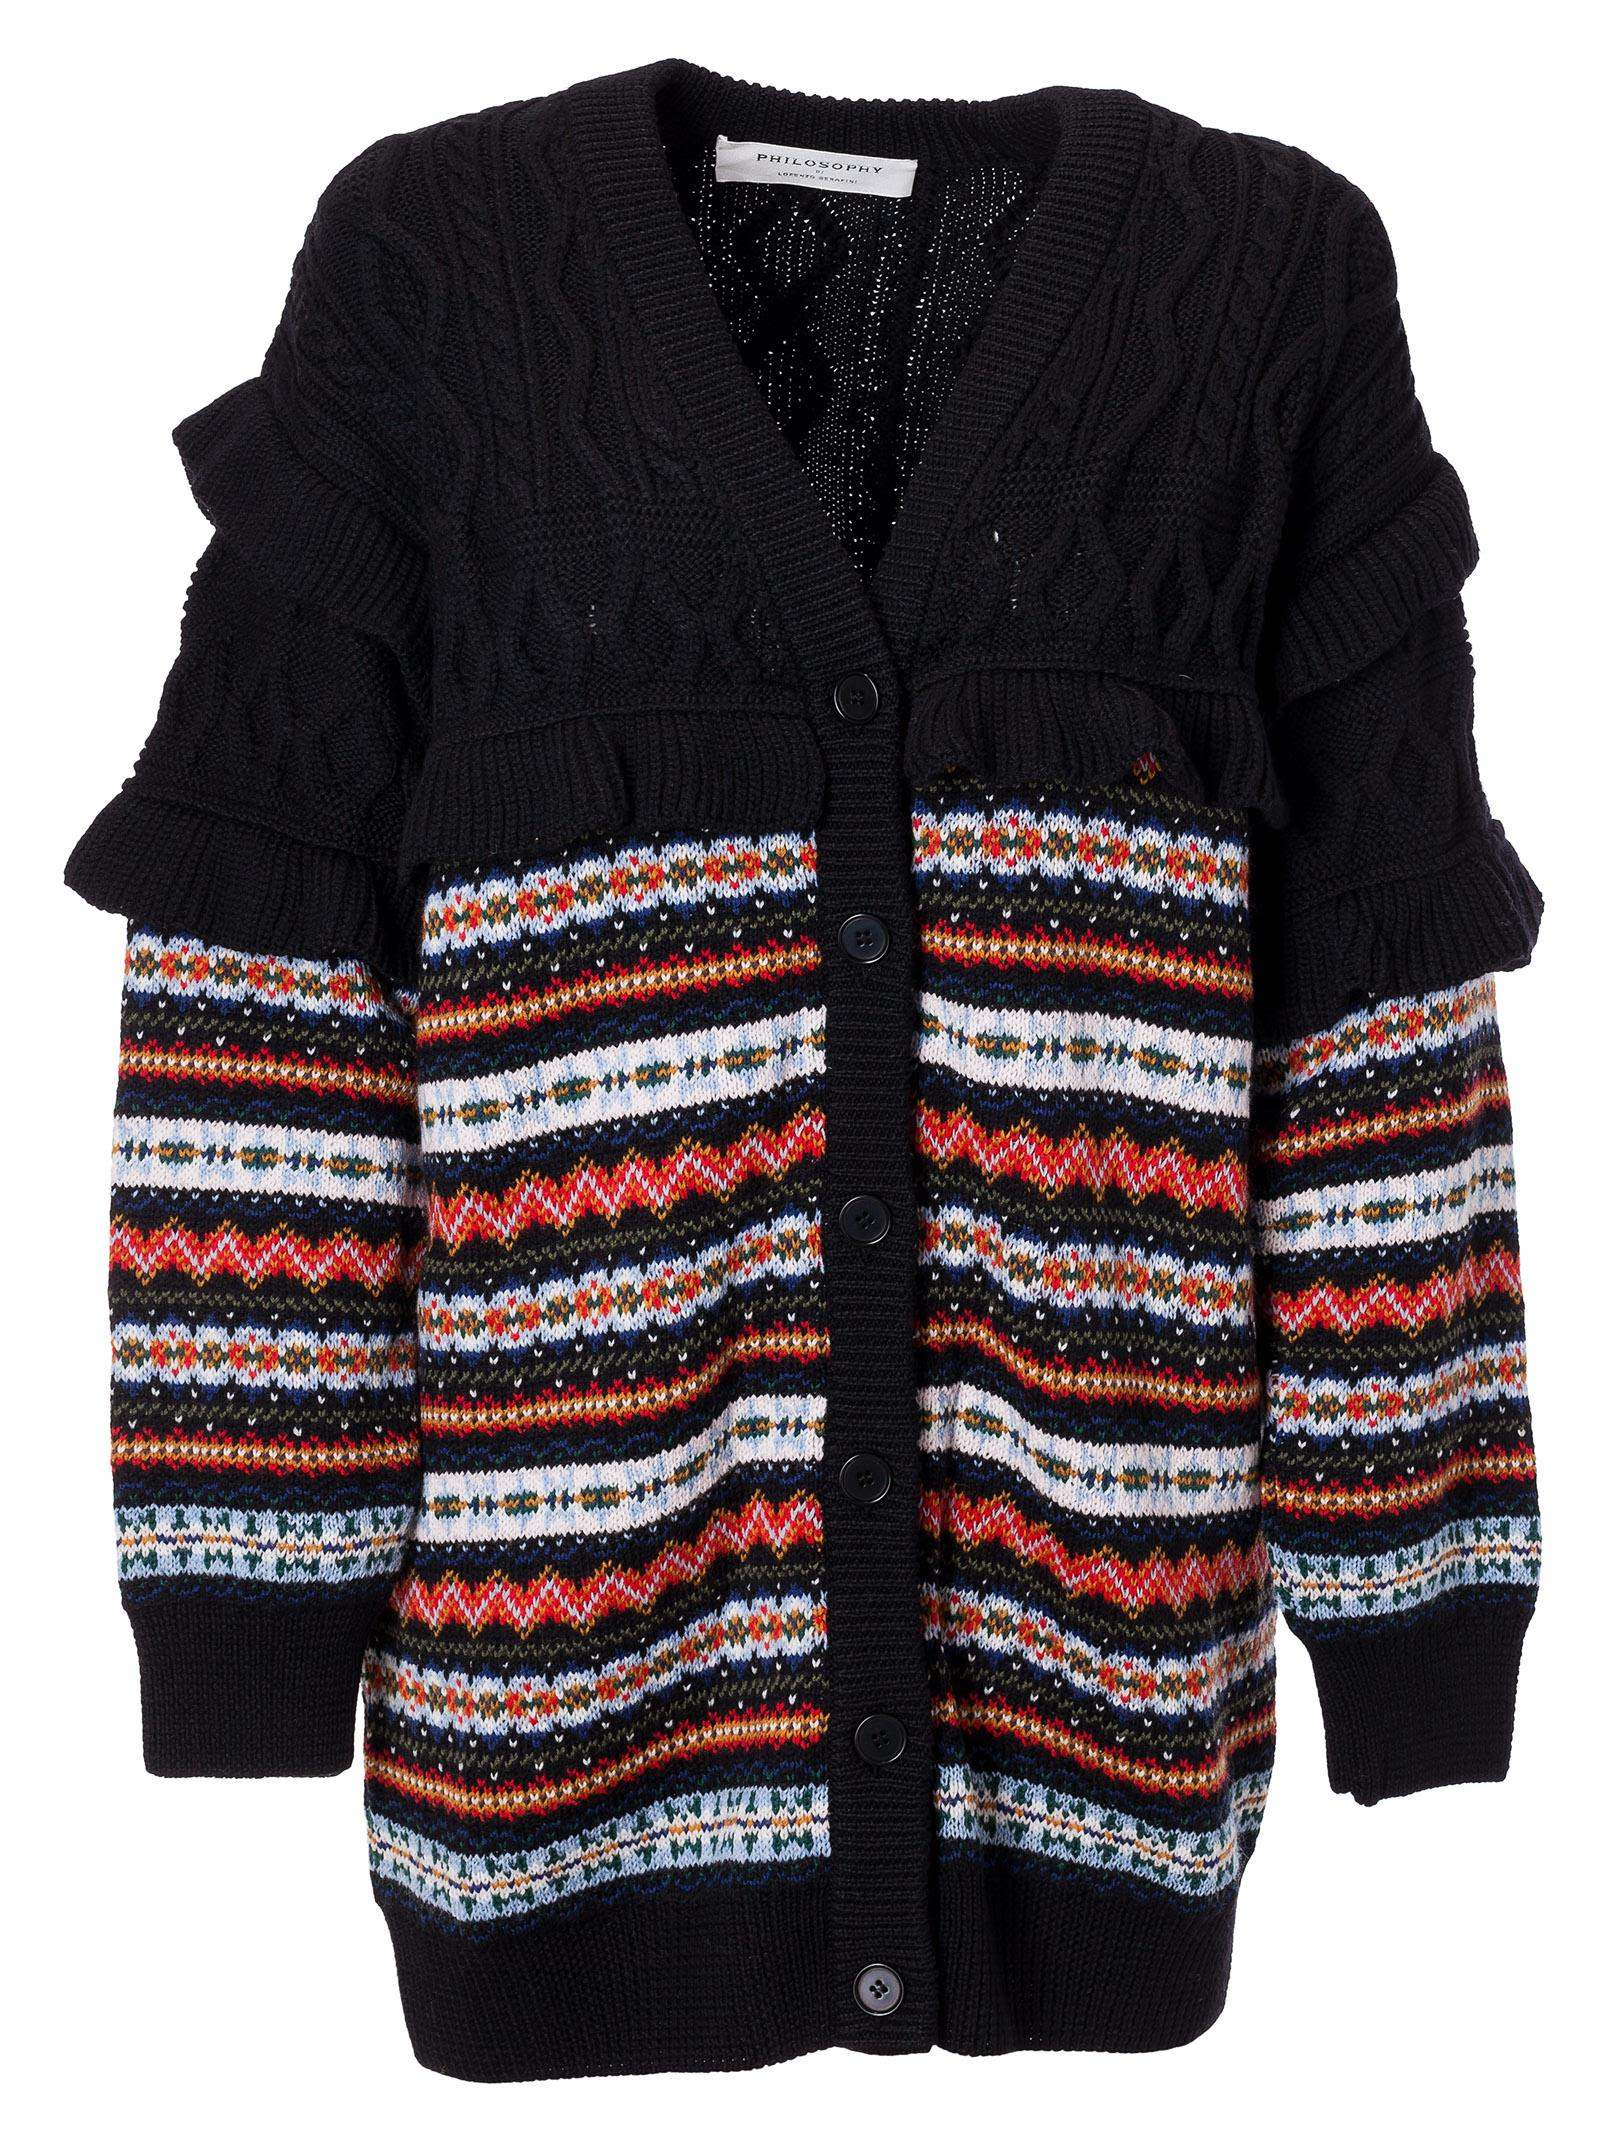 Philosophy Di Lorenzo Serafini patterned cable knit cardigan Amazon Sale Online Cheap Price Low Shipping Fee FBy9uNmz